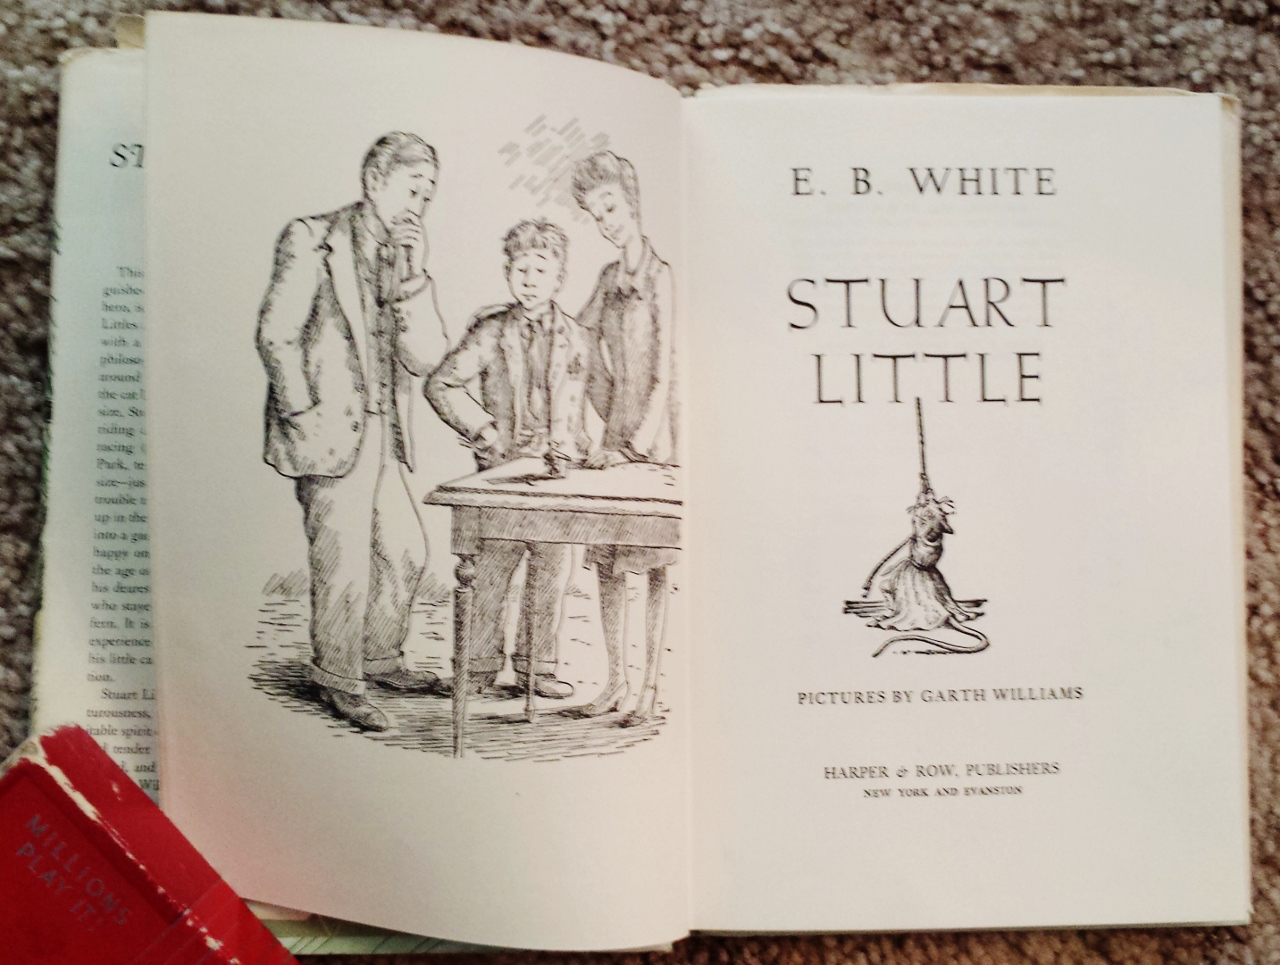 Stuart Little A Book For Children E B White Vintage